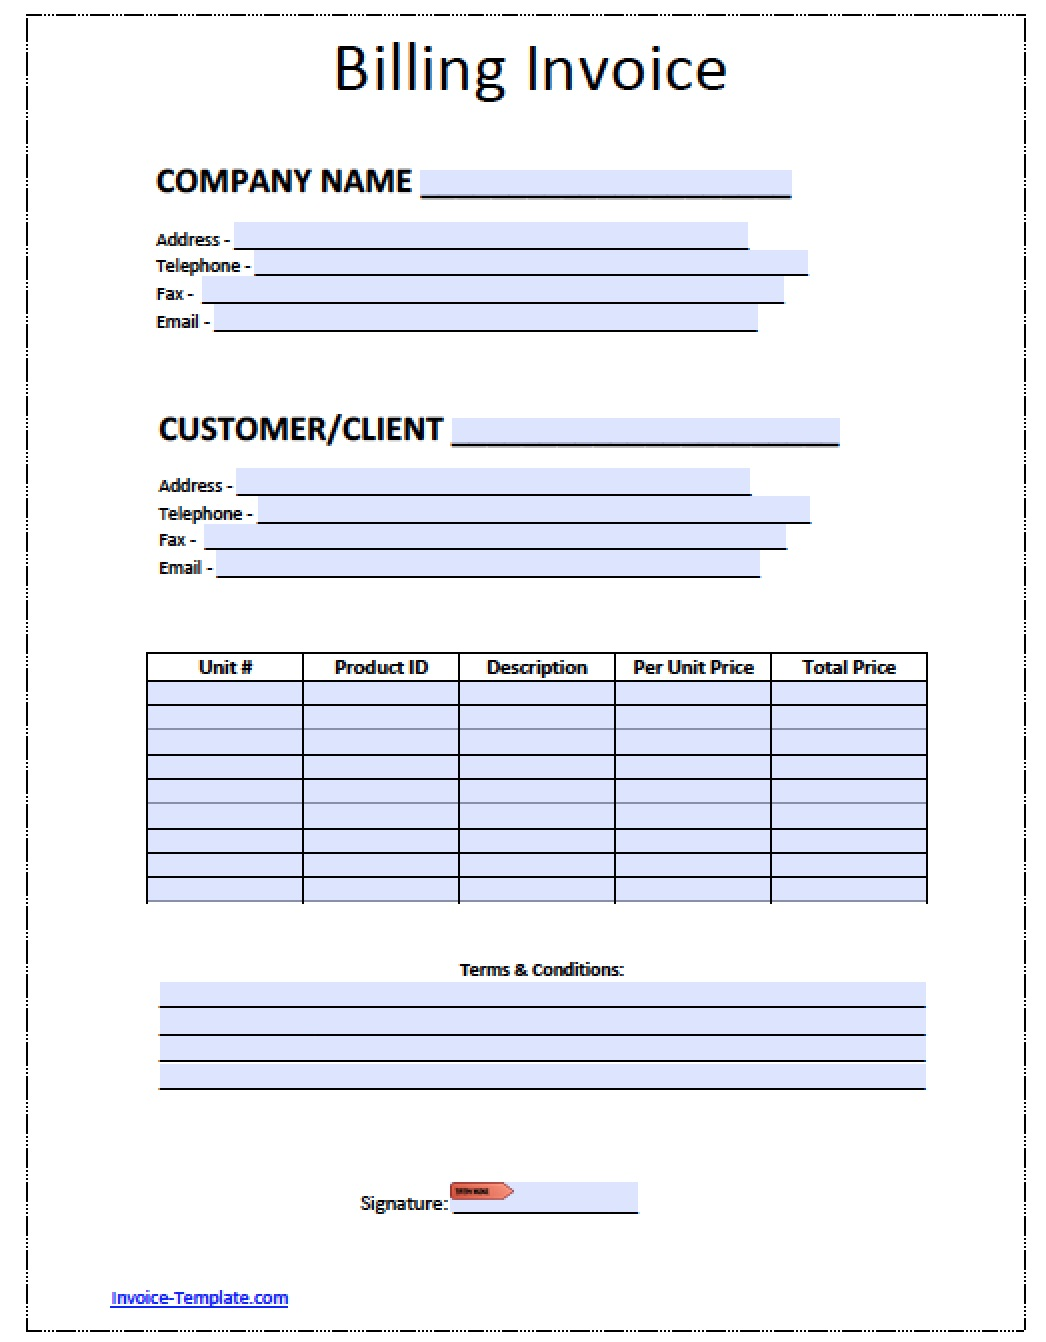 Soulfulpowerus  Winning Billing Invoice Invoices Faq U Cloudflare Support Billing  With Excellent Free Billing Invoice Template  Excel  Pdf  Word Doc  Billing With Breathtaking Windows Invoice Software Also Invoice Template Word Document In Addition True Invoice Price New Car And Xero Custom Invoice As Well As Print Invoice Template Additionally Consultant Invoice Template Free From Happytomco With Soulfulpowerus  Excellent Billing Invoice Invoices Faq U Cloudflare Support Billing  With Breathtaking Free Billing Invoice Template  Excel  Pdf  Word Doc  Billing And Winning Windows Invoice Software Also Invoice Template Word Document In Addition True Invoice Price New Car From Happytomco